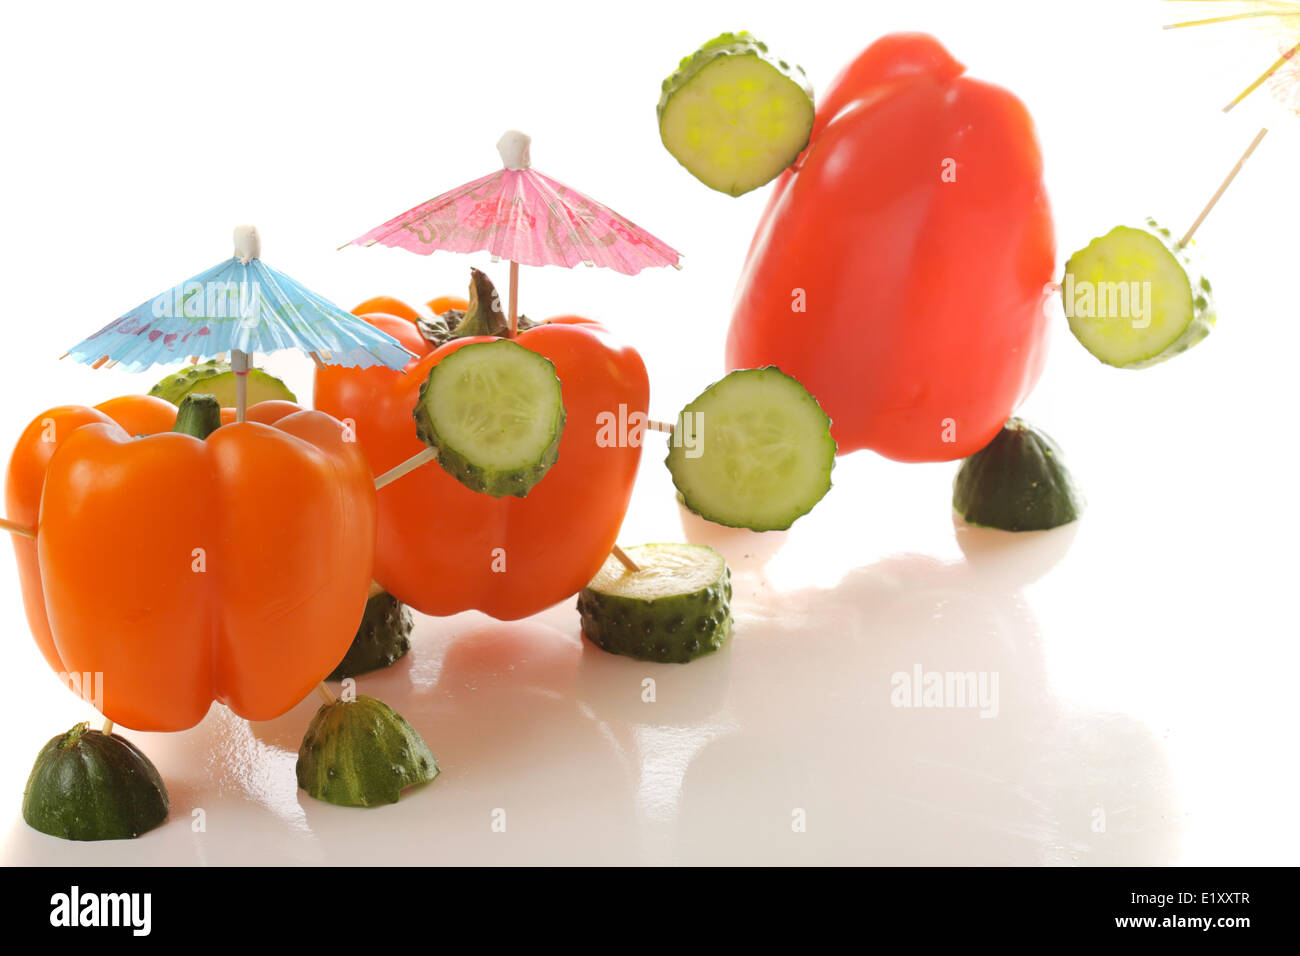 Three paprika personages - Stock Image